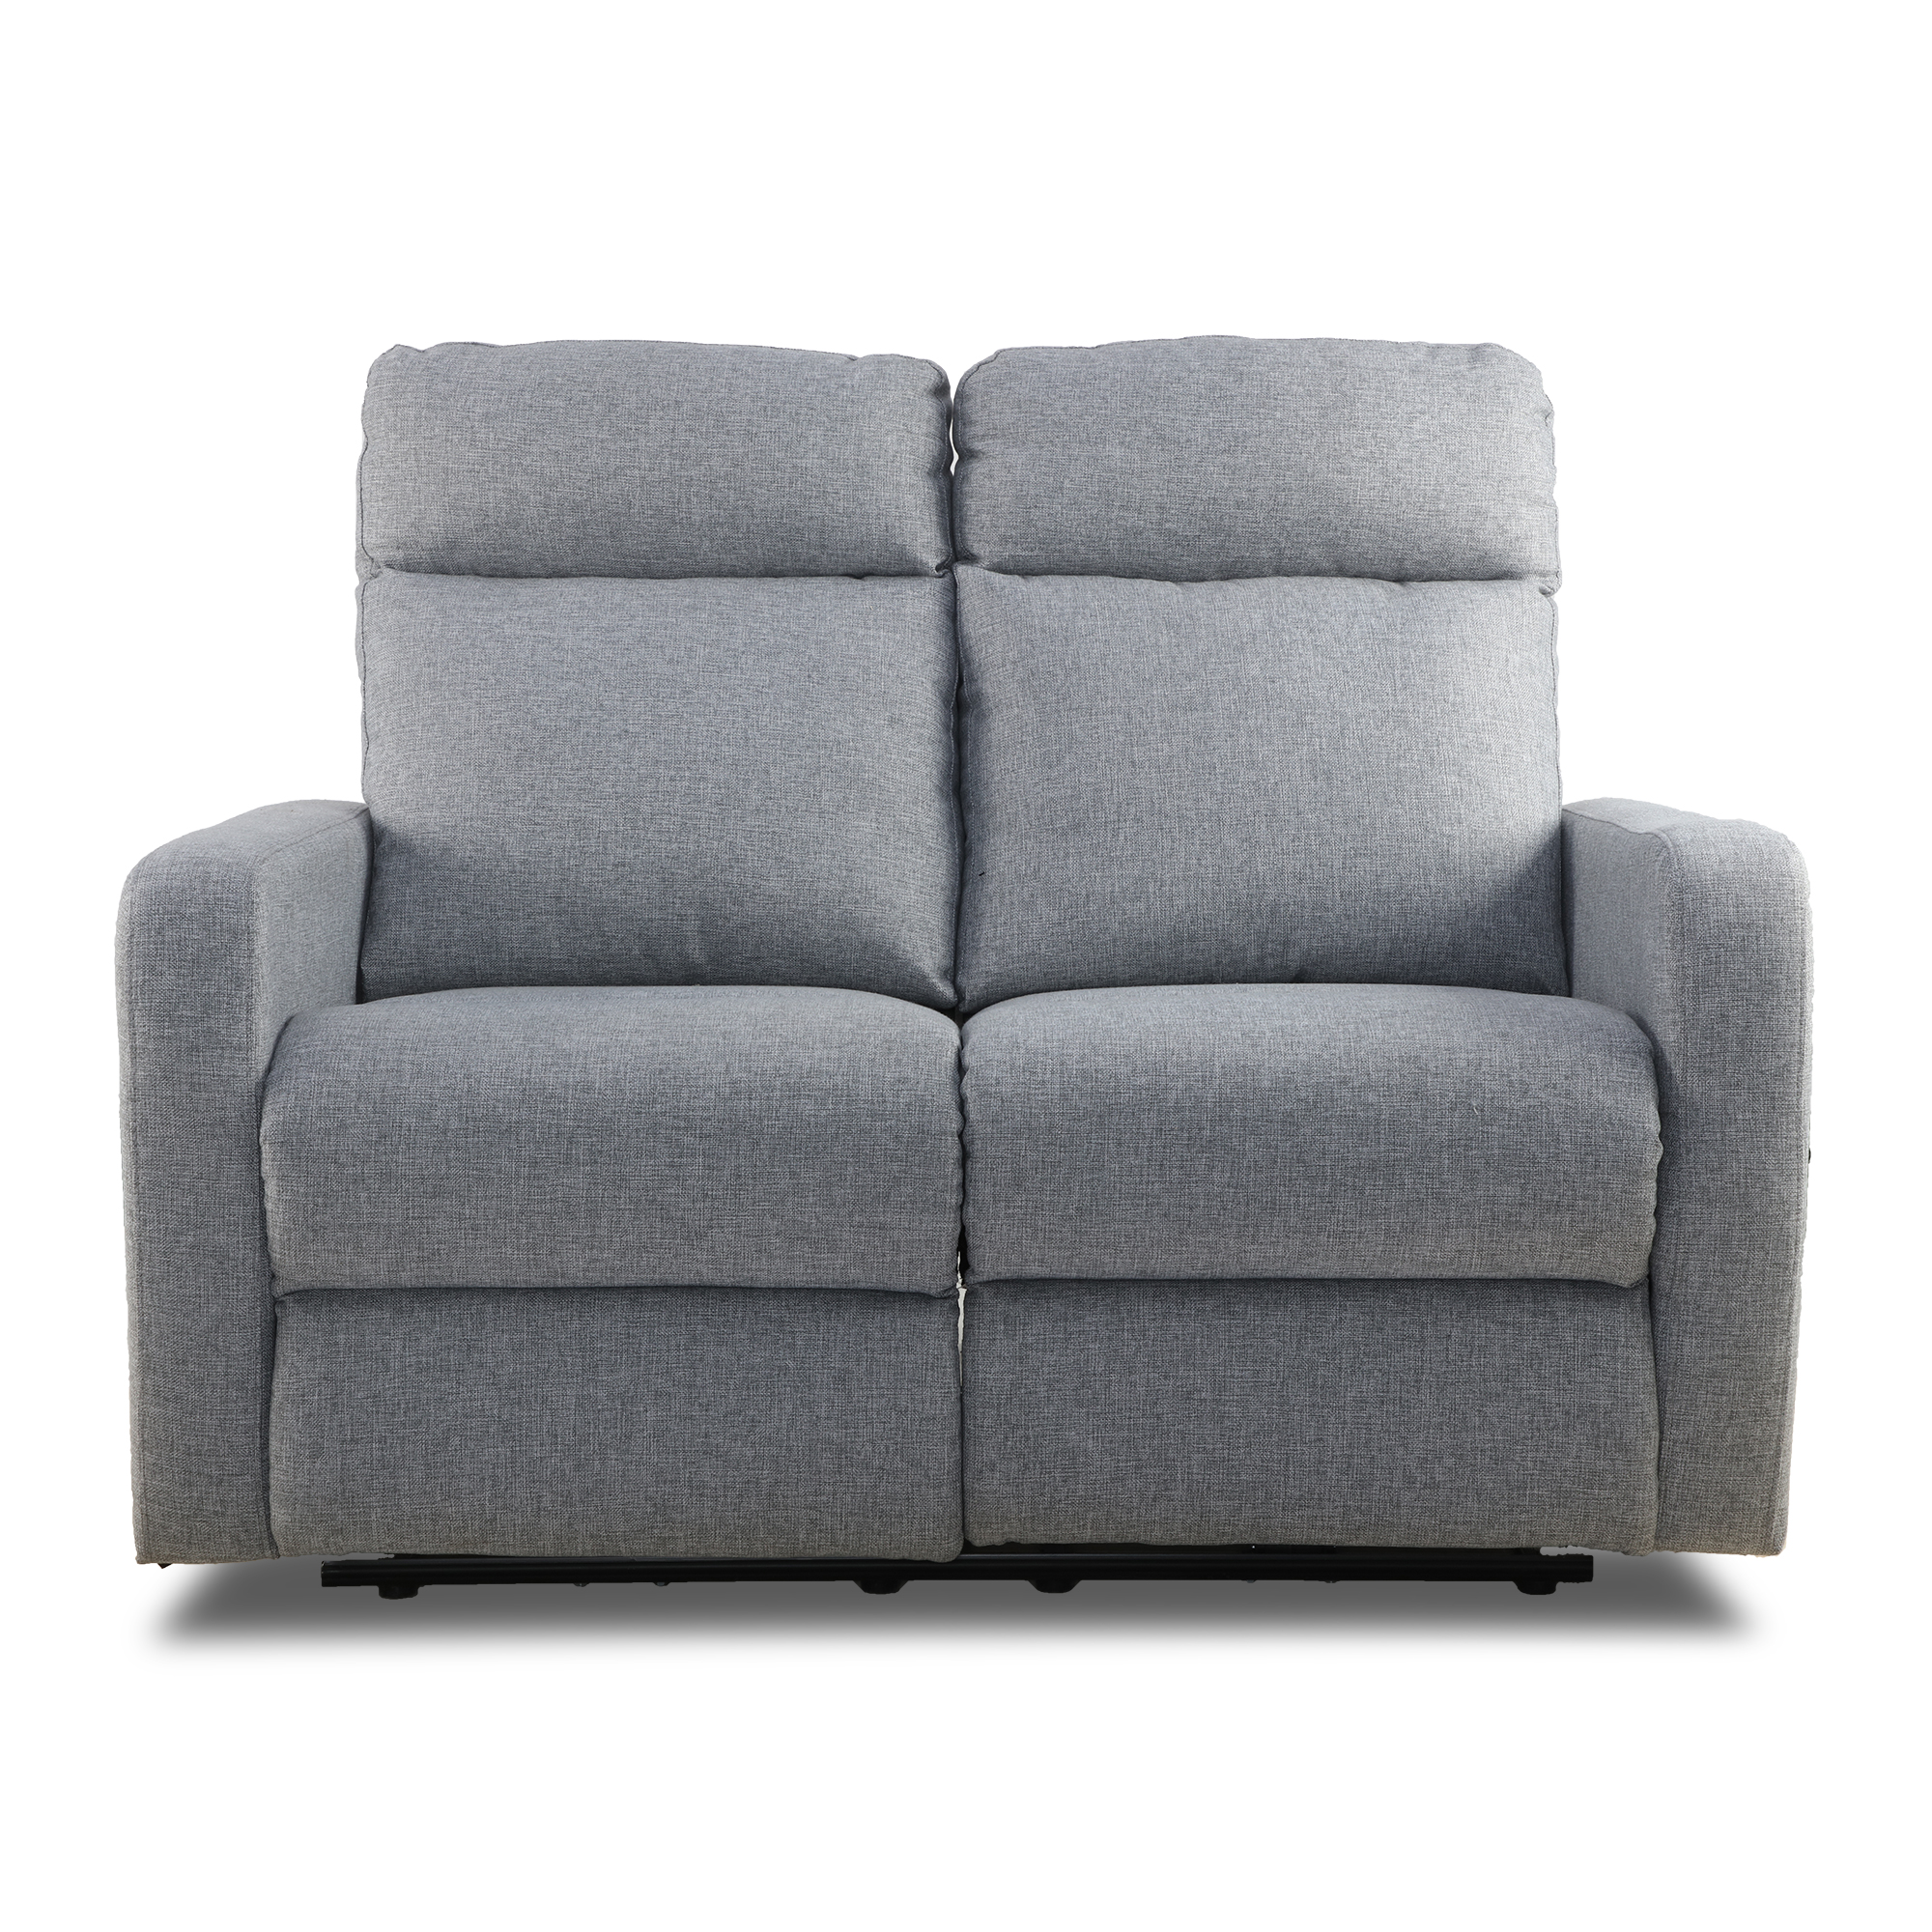 Picture of: Sofa And Loveseat Set Modern Sofa Designs 2020 Zhejiang Jiaxing Furniture Buy Sofa And Loveseat Set Design Sofa Modern Sofa Designs Product On Alibaba Com